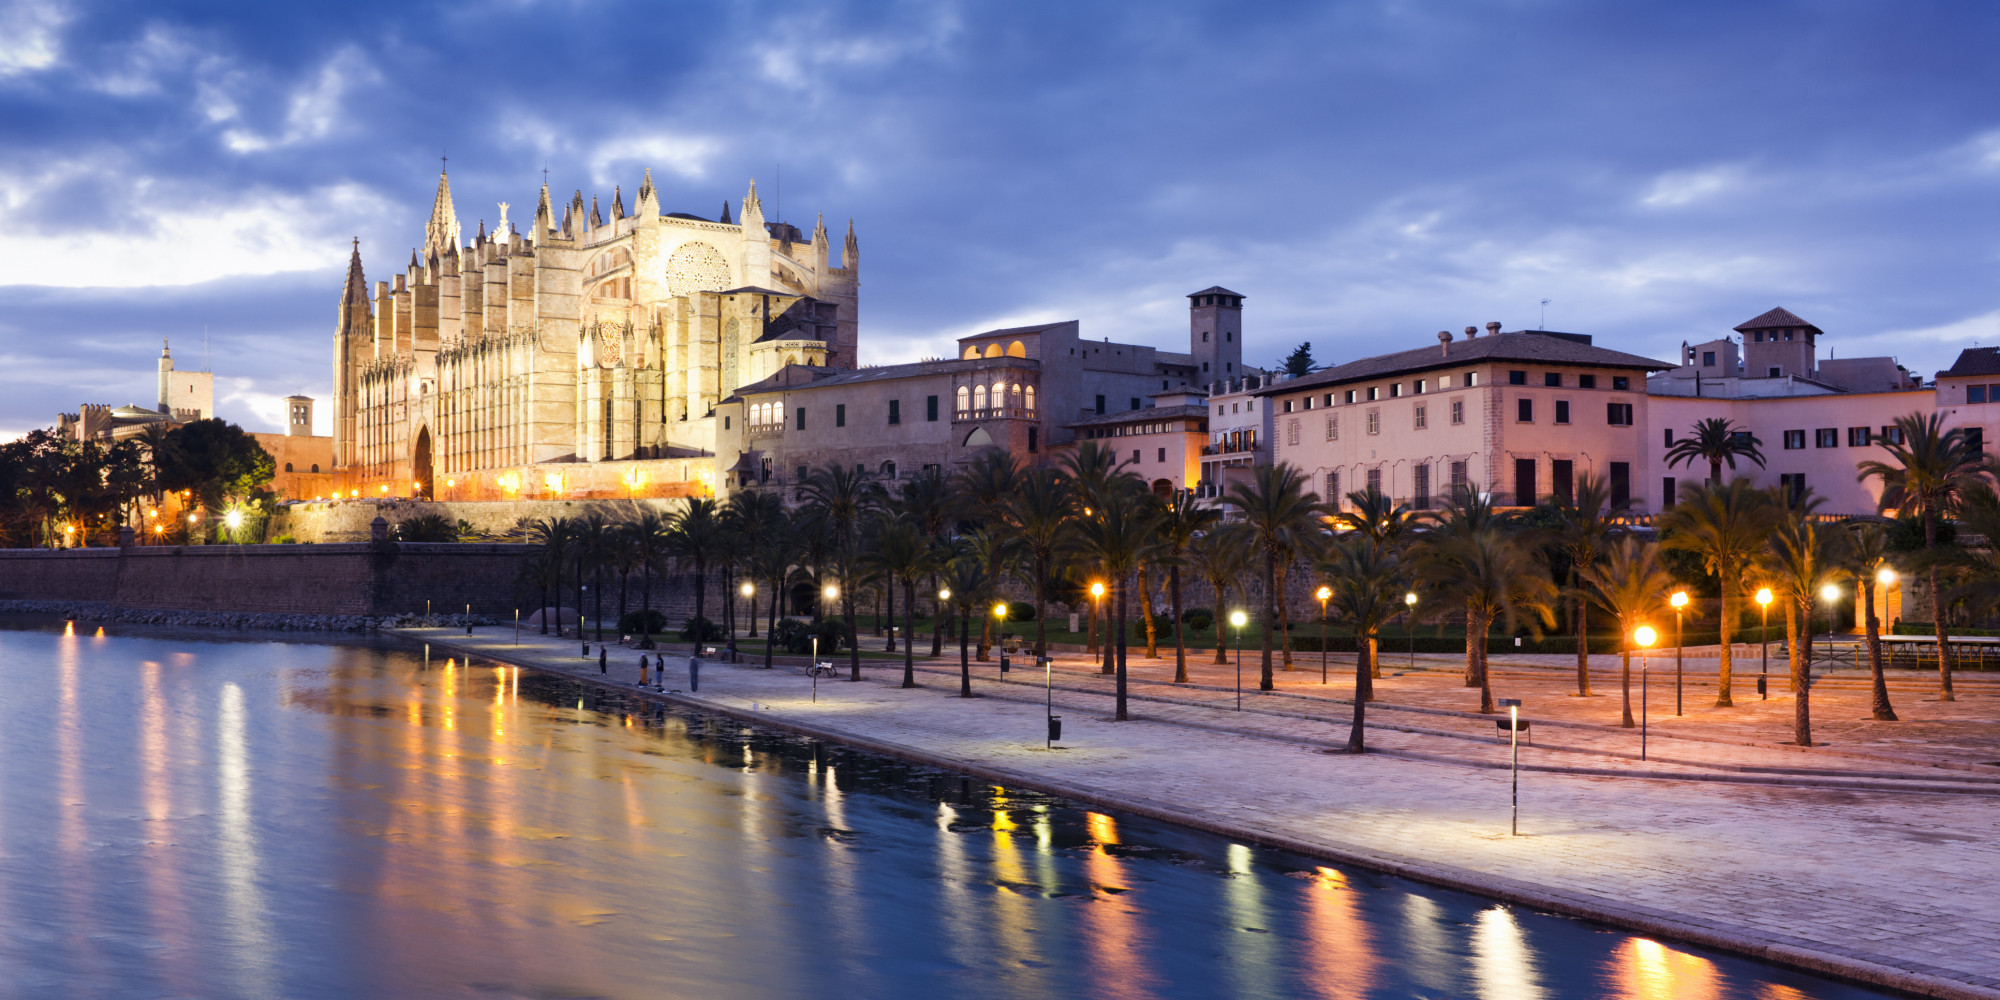 palma de mallorca chat Meet thousands of latin singles in the palma de mallorca, spain dating area today find your true love at amorcom.